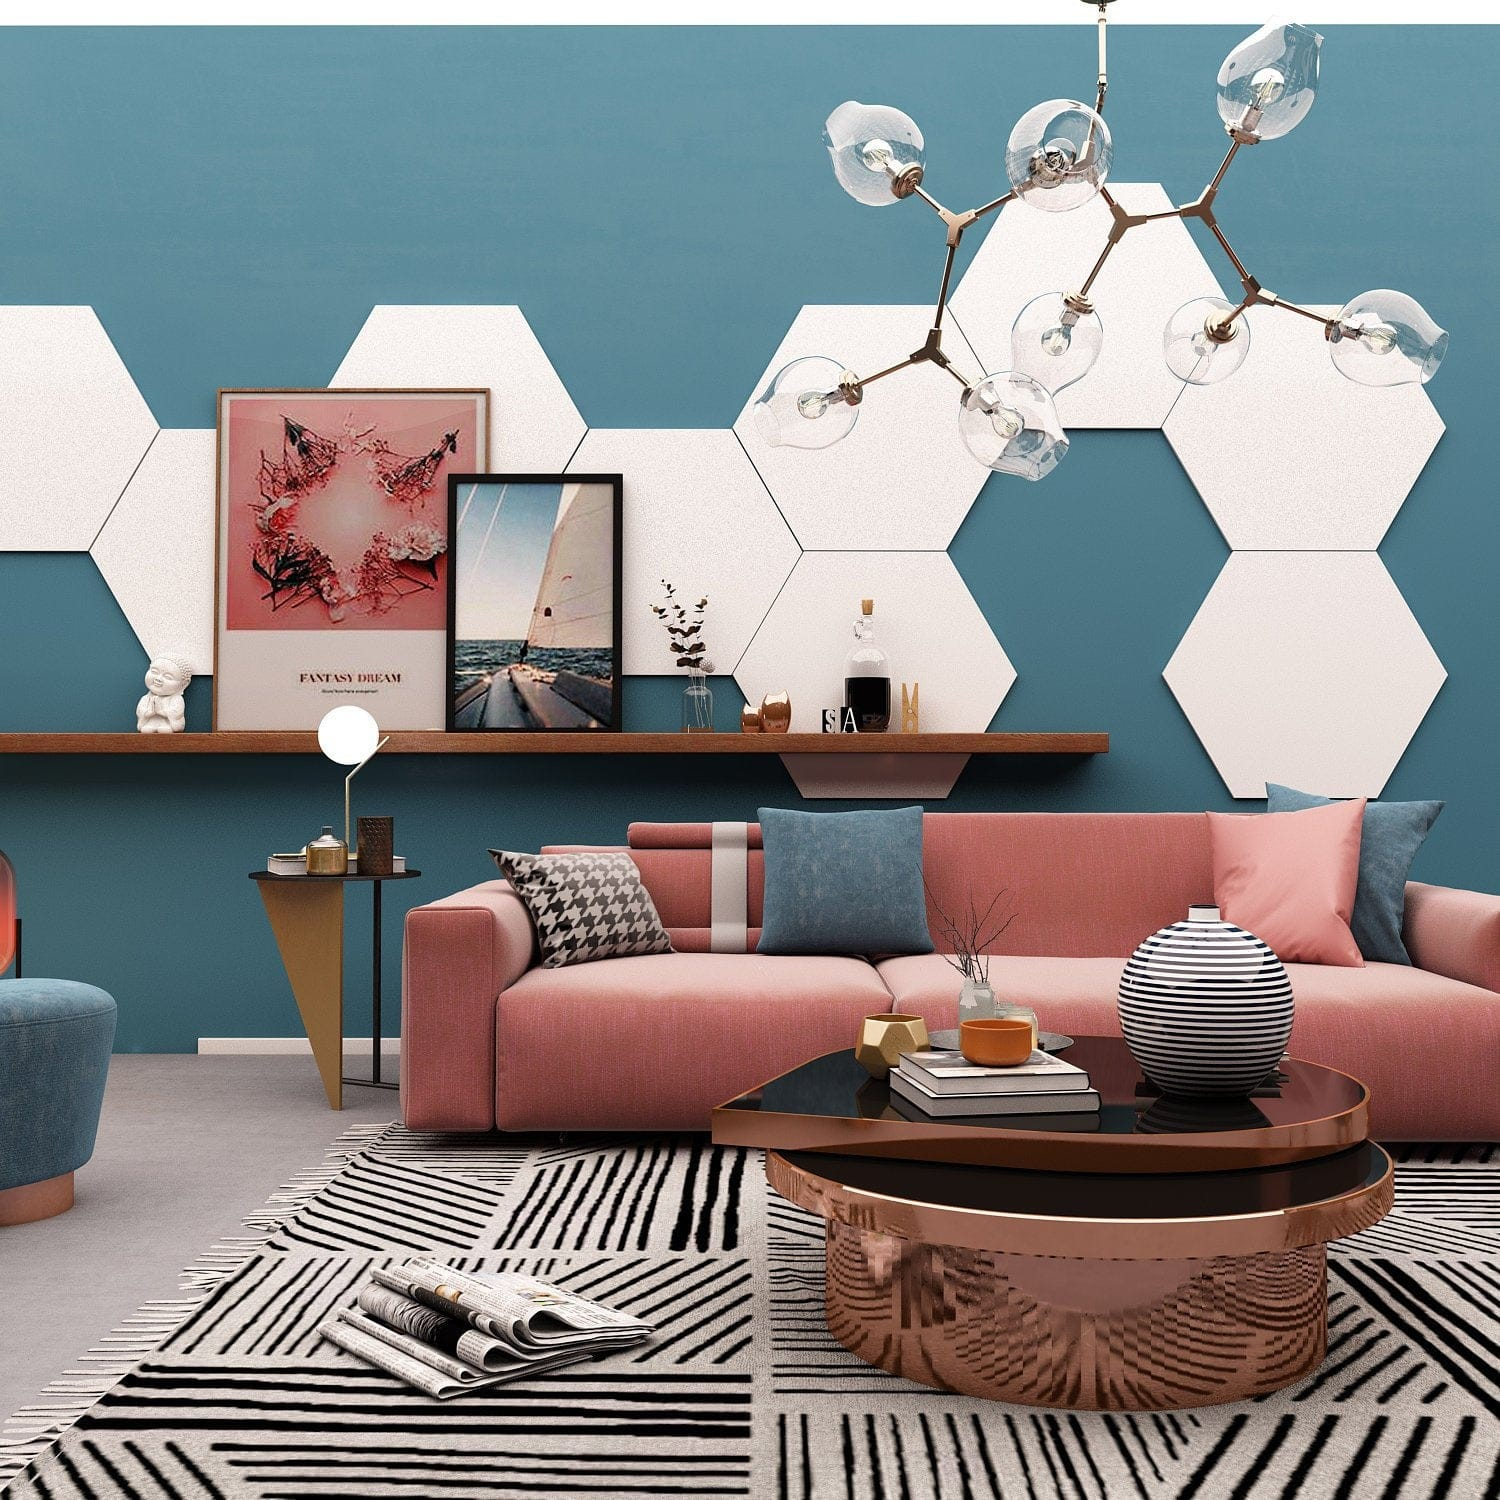 Hexagon Wall Decor Pack 9